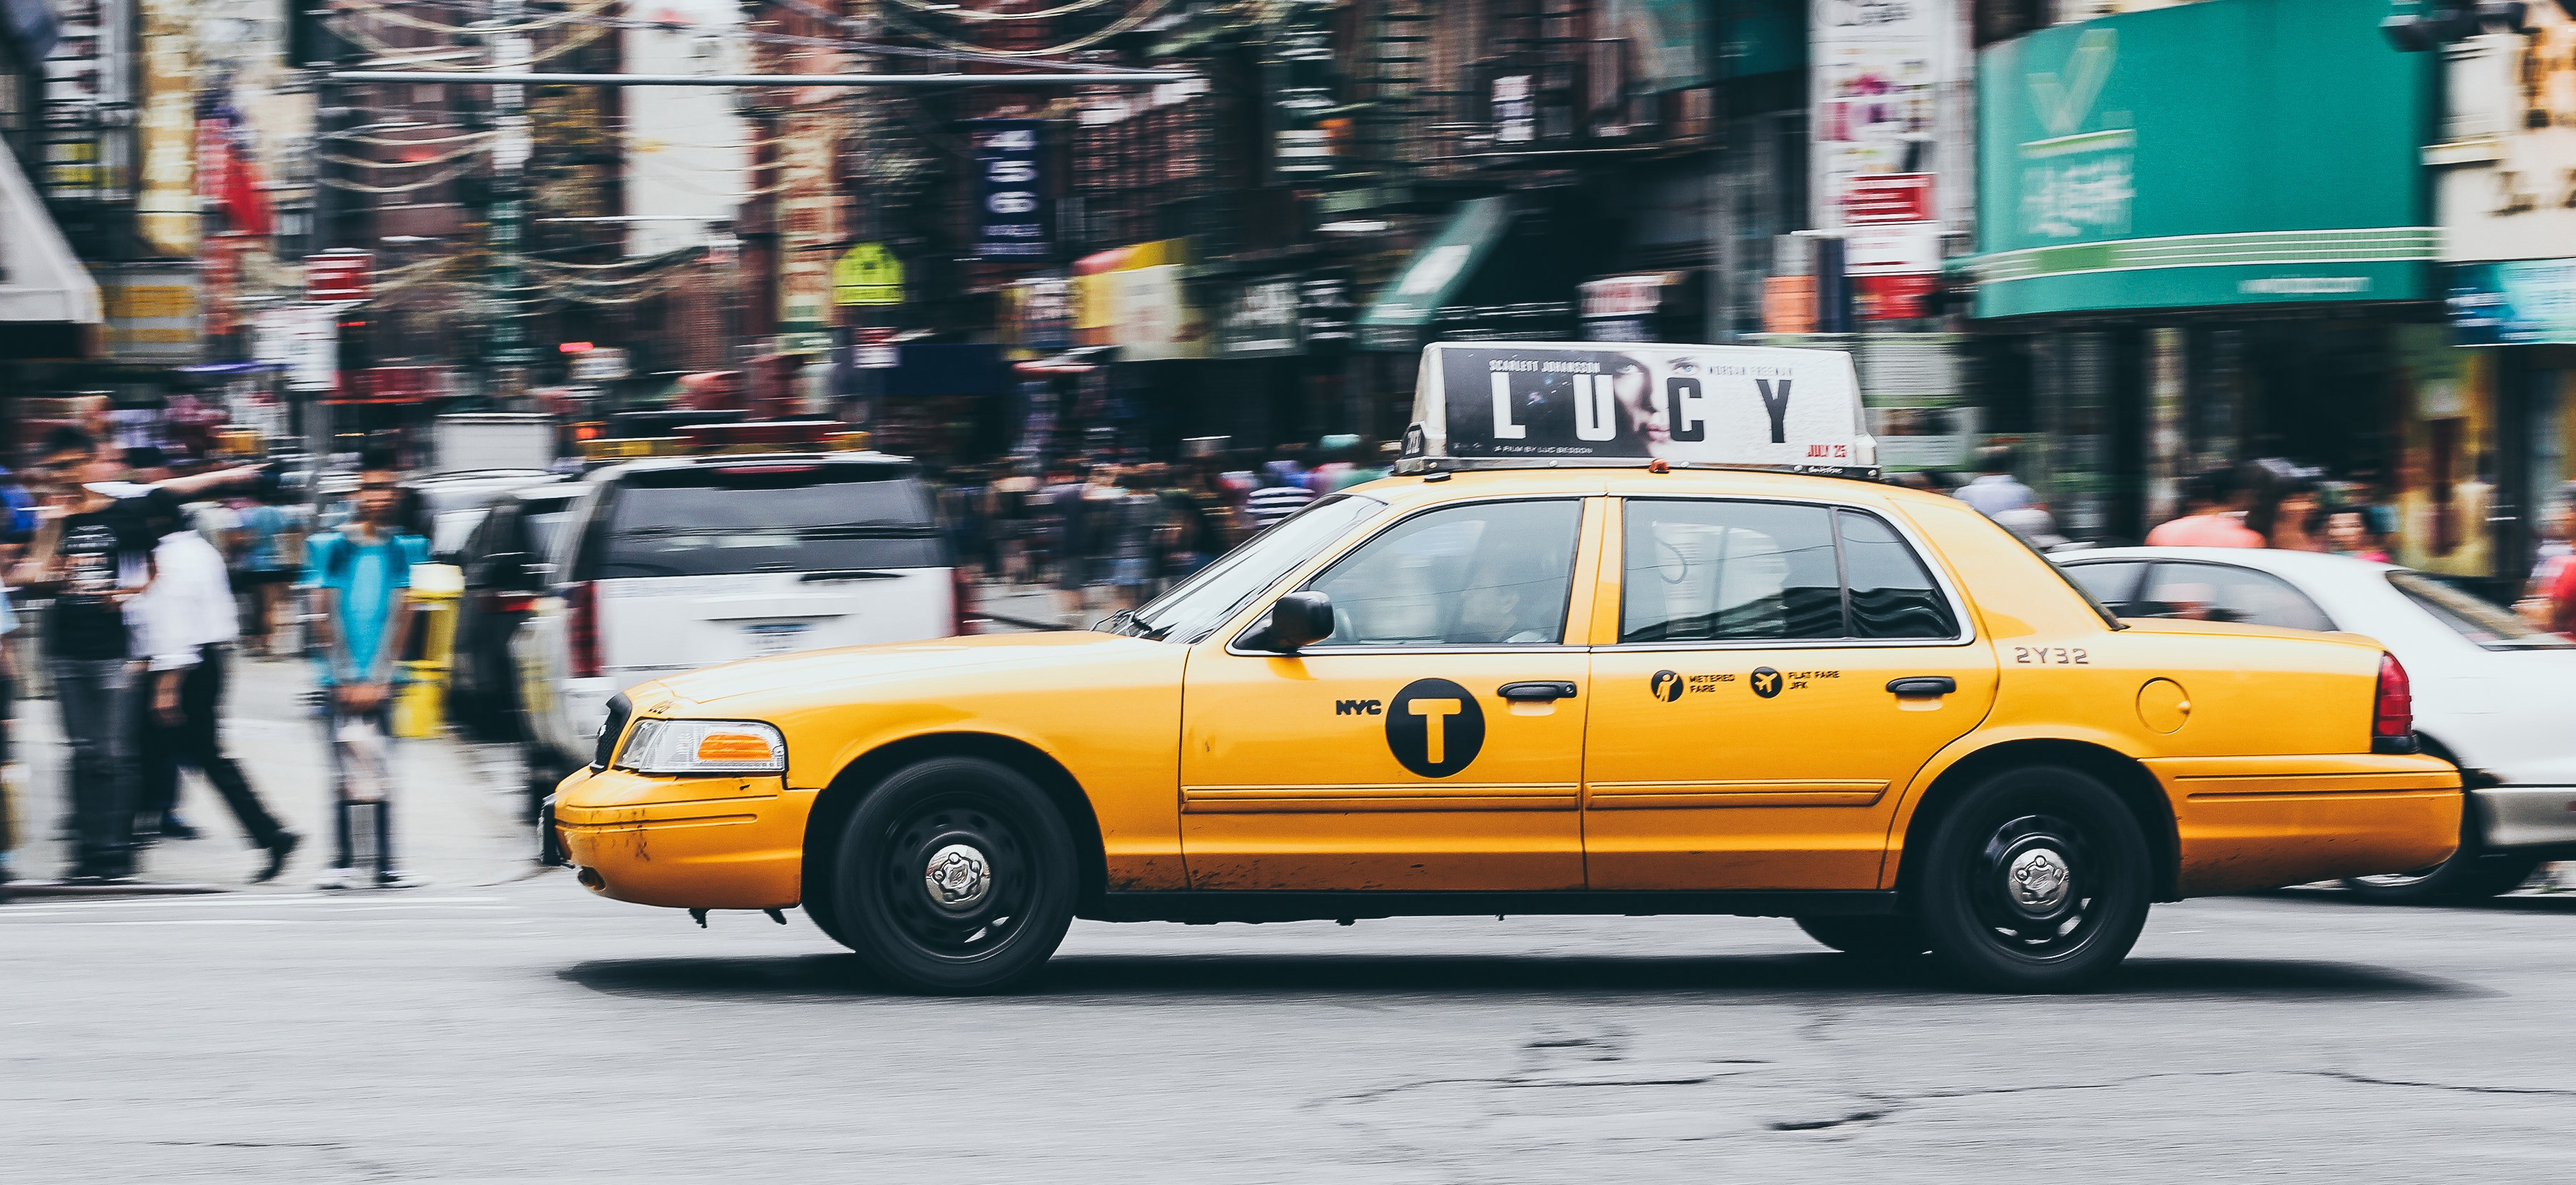 A New York taxi races across an intersection.